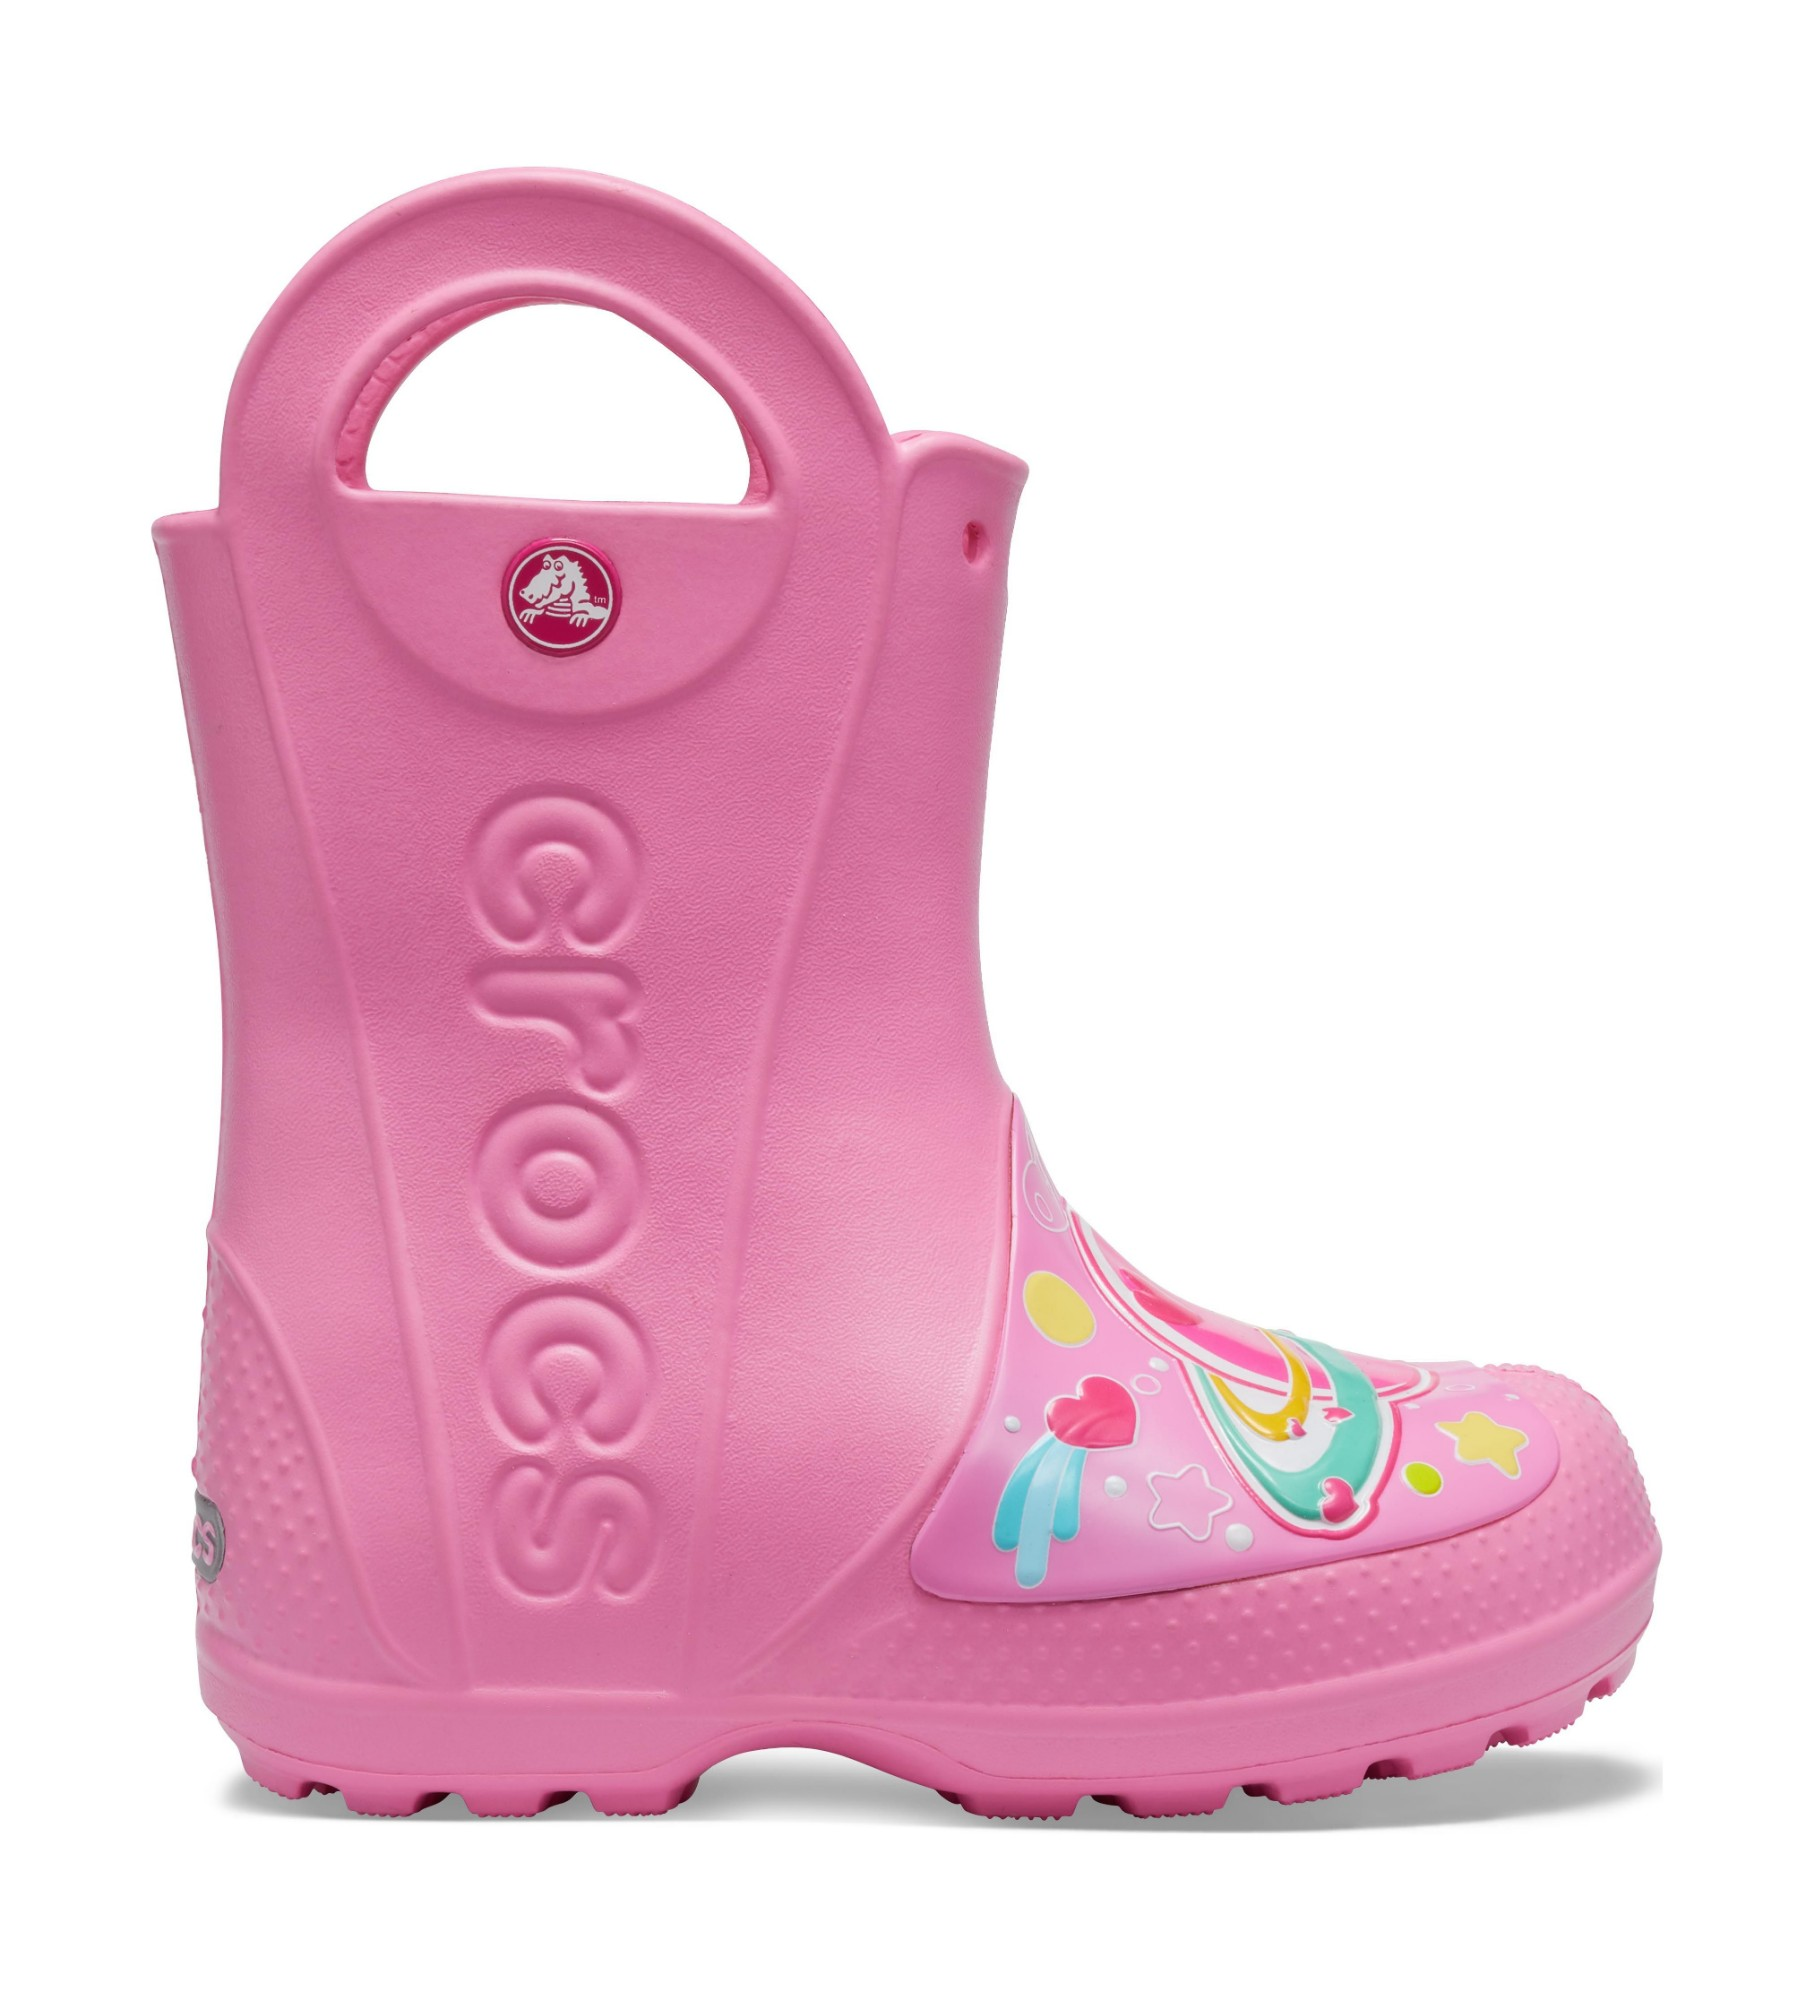 Crocs™ FunLab Galactic Hearts Rain Boot Girl's Pink Lemonade 25